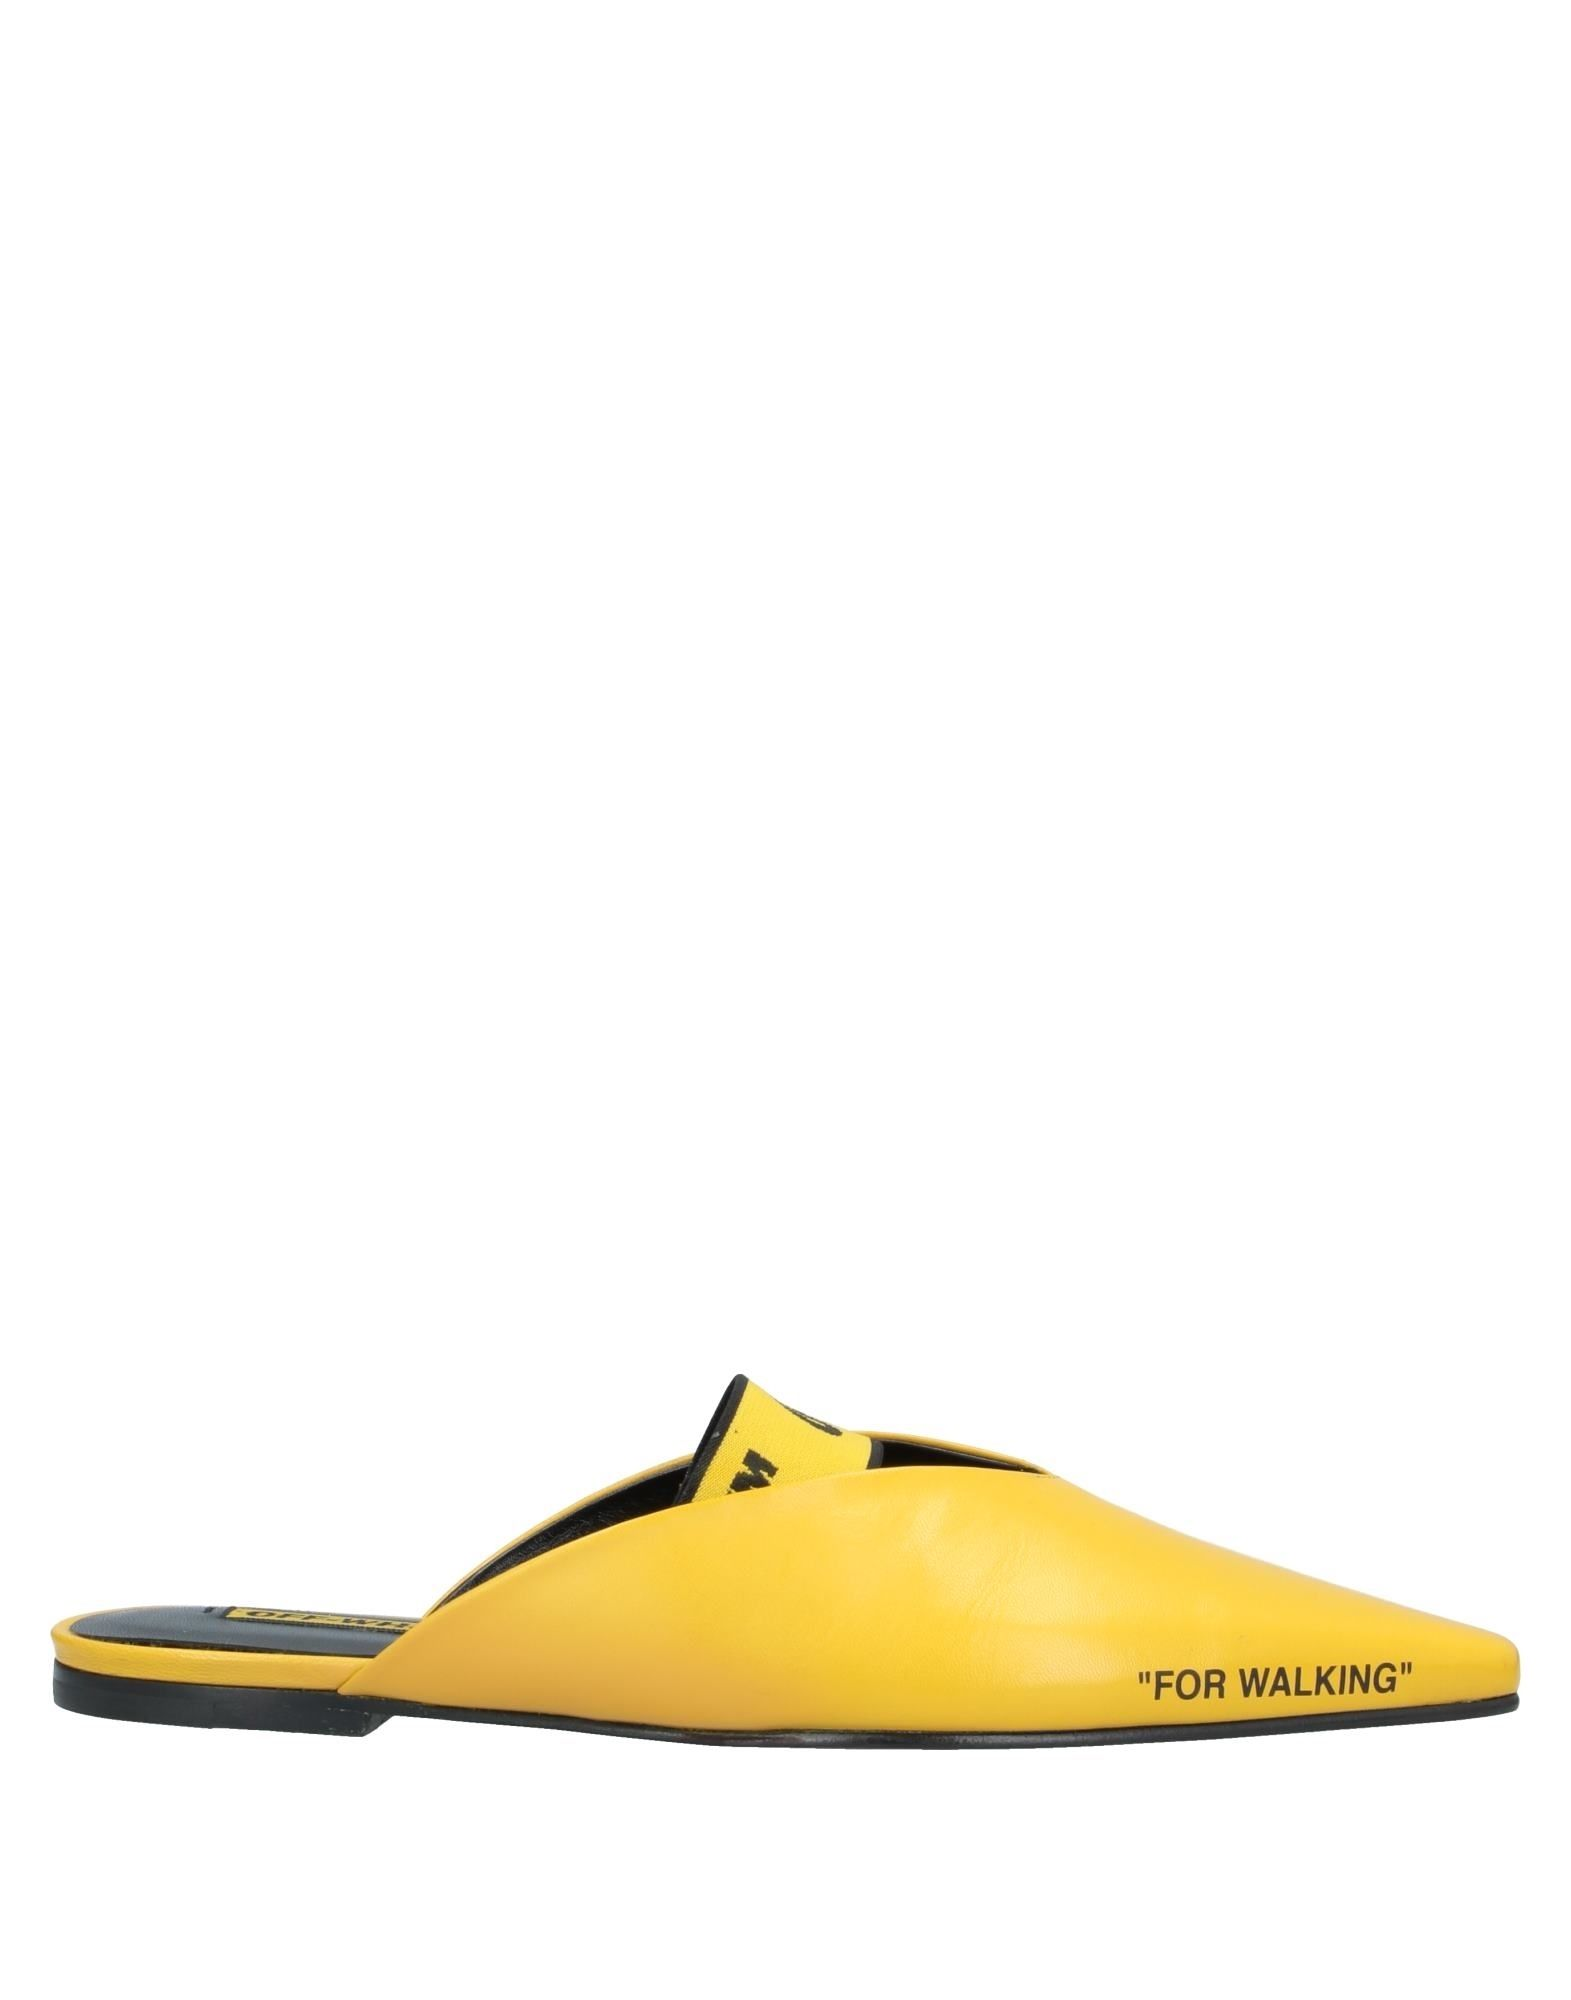 OFF-WHITE™ Mules. leather, detachable application, logo, solid color, narrow toeline, flat, leather lining, leather sole, contains non-textile parts of animal origin, small sized. Soft Leather, Stretch fibers